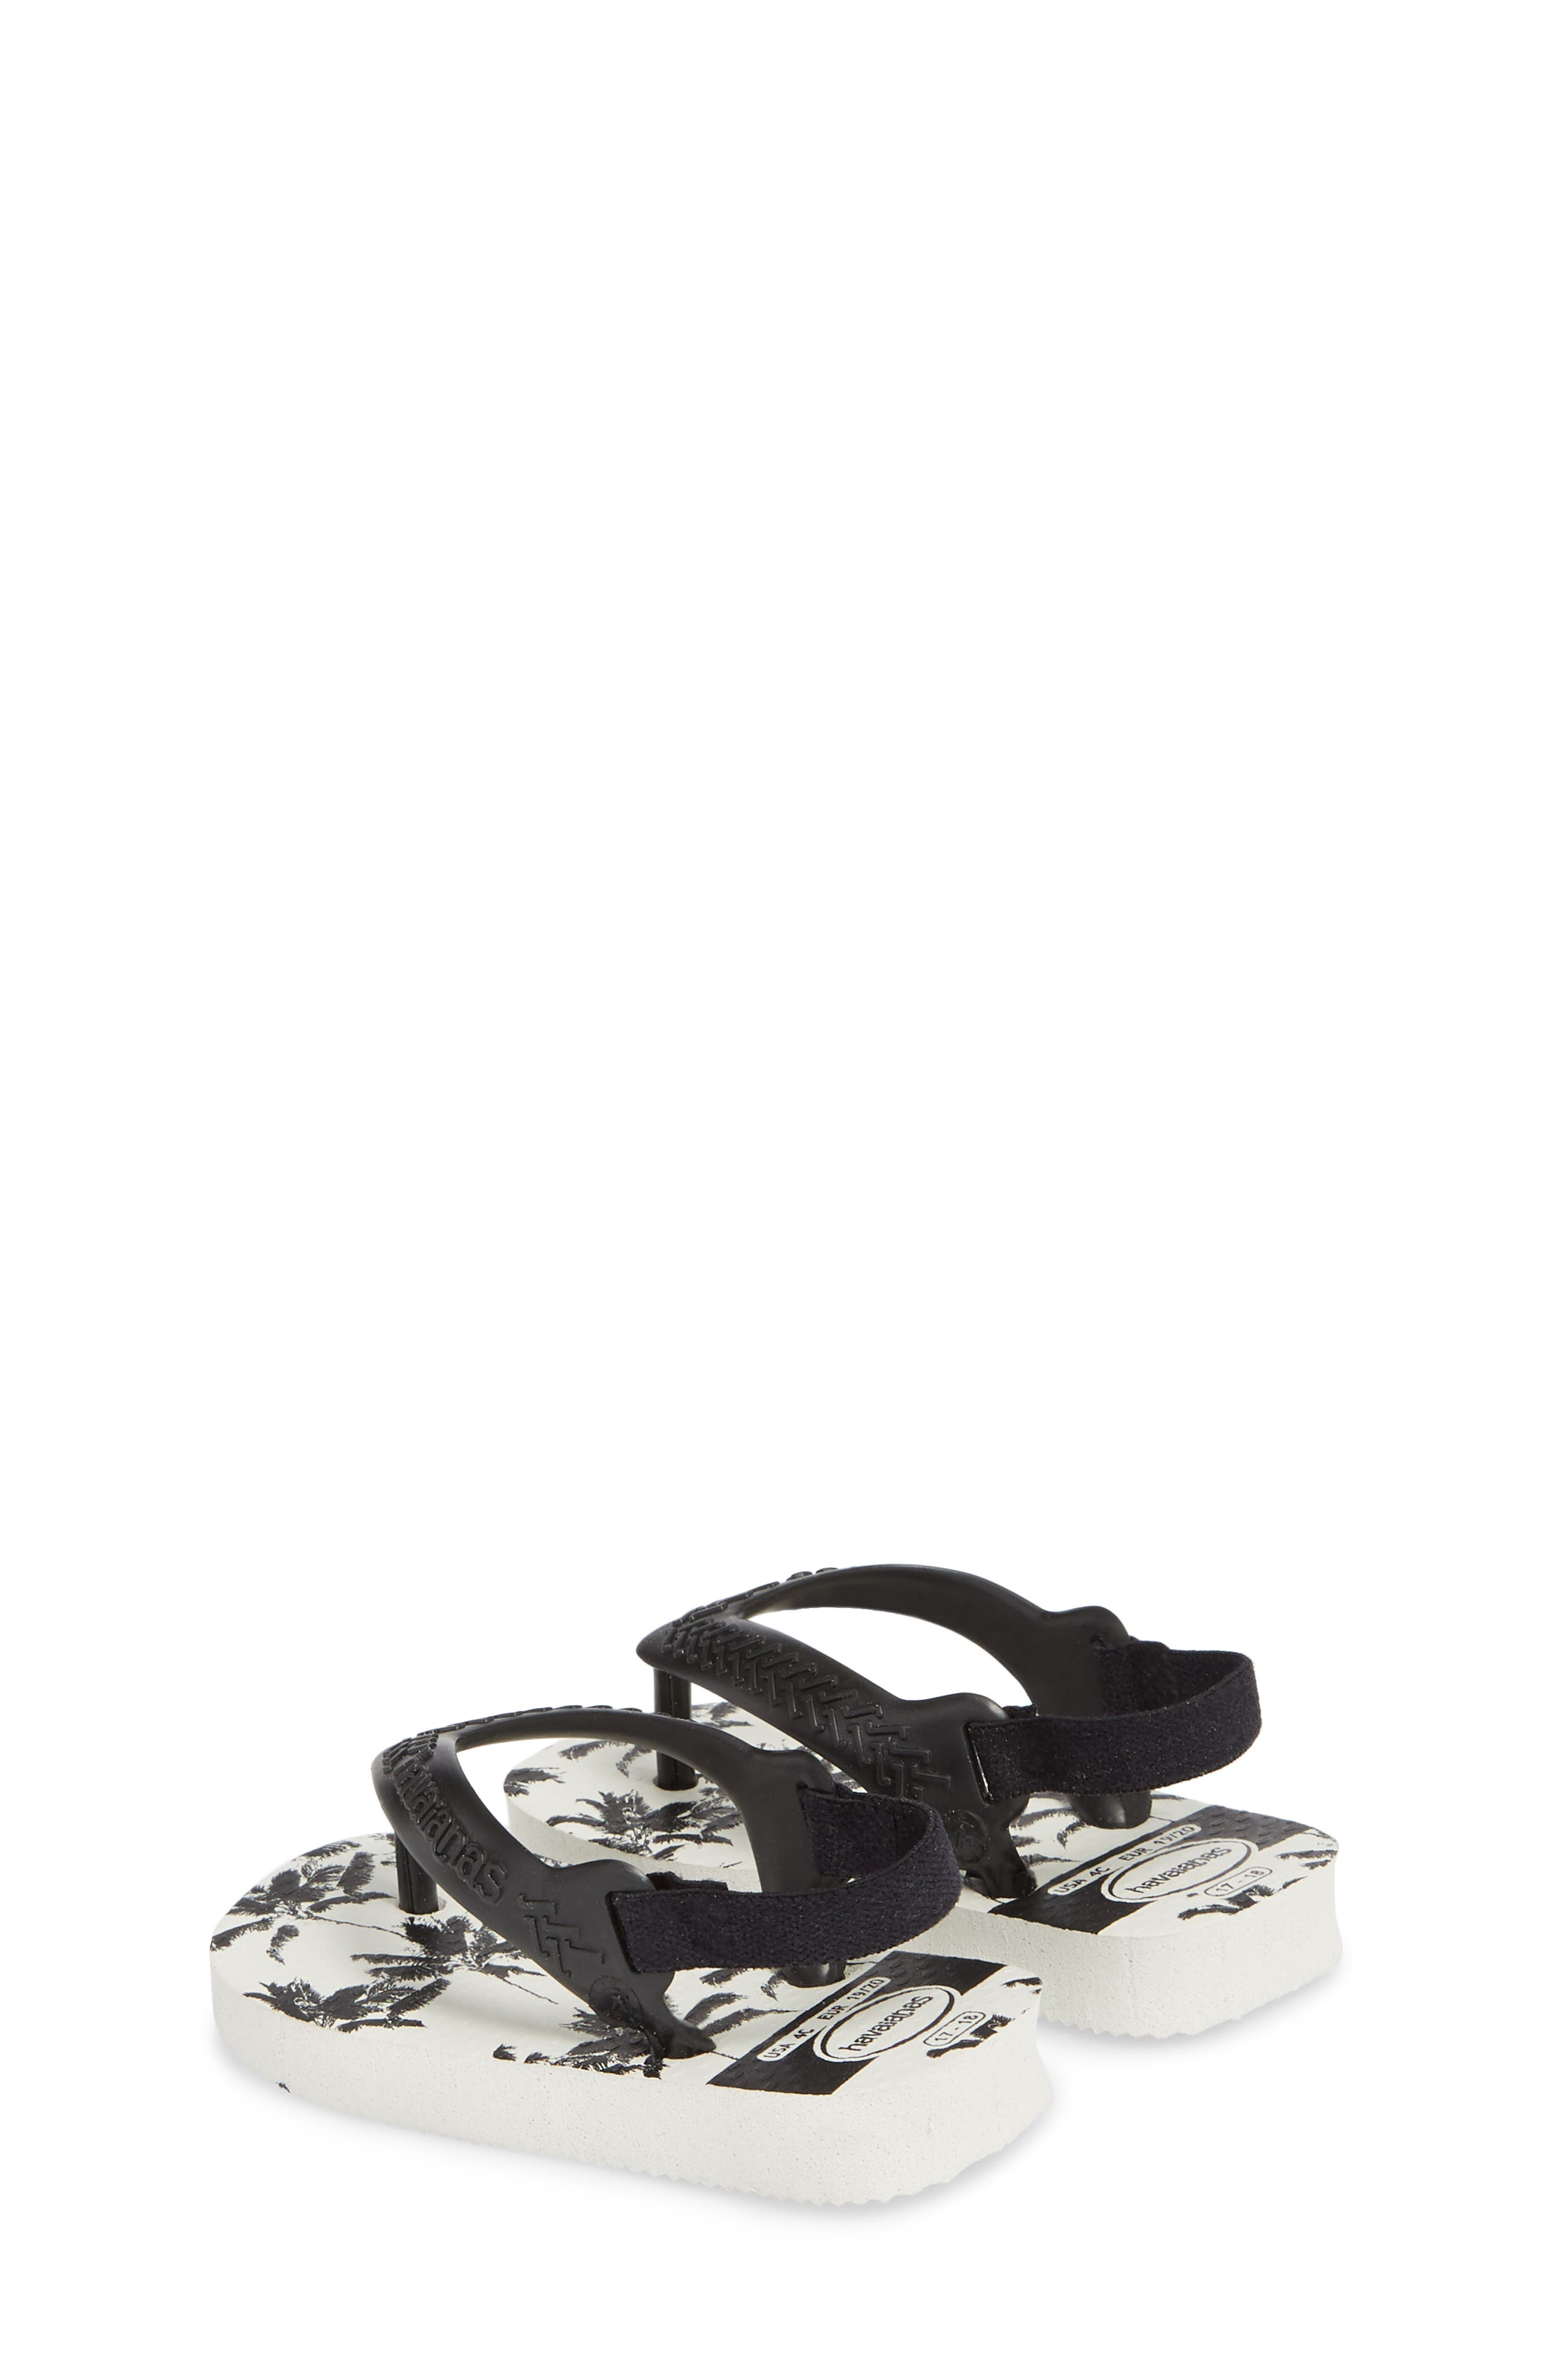 Havianas Baby Chic Sandal,                             Alternate thumbnail 3, color,                             100